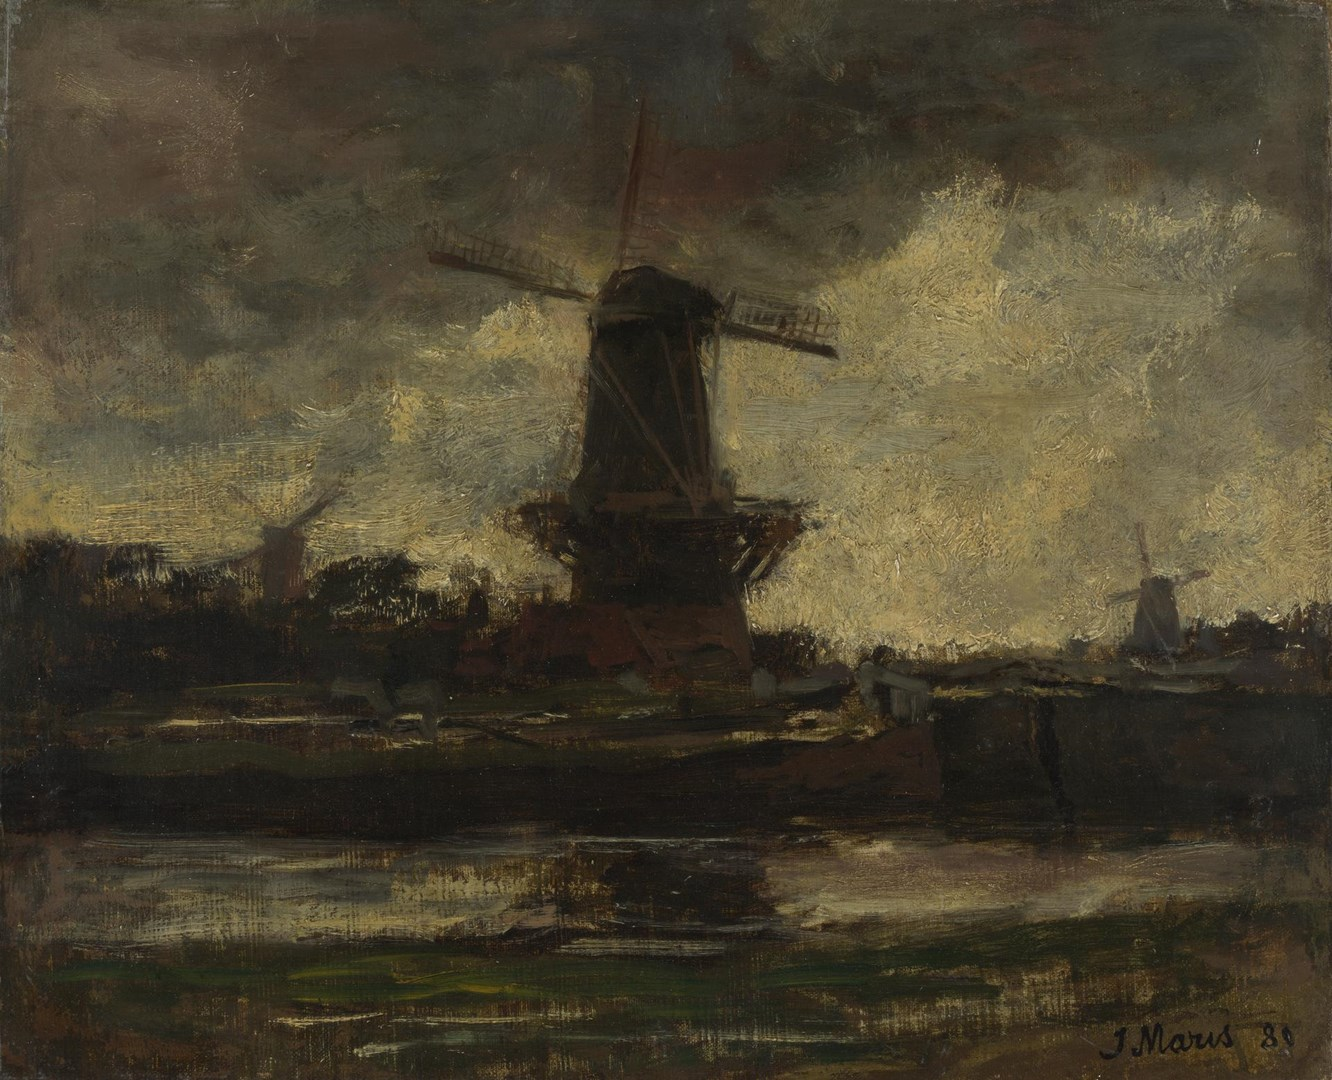 Three Windmills by Jacob Maris